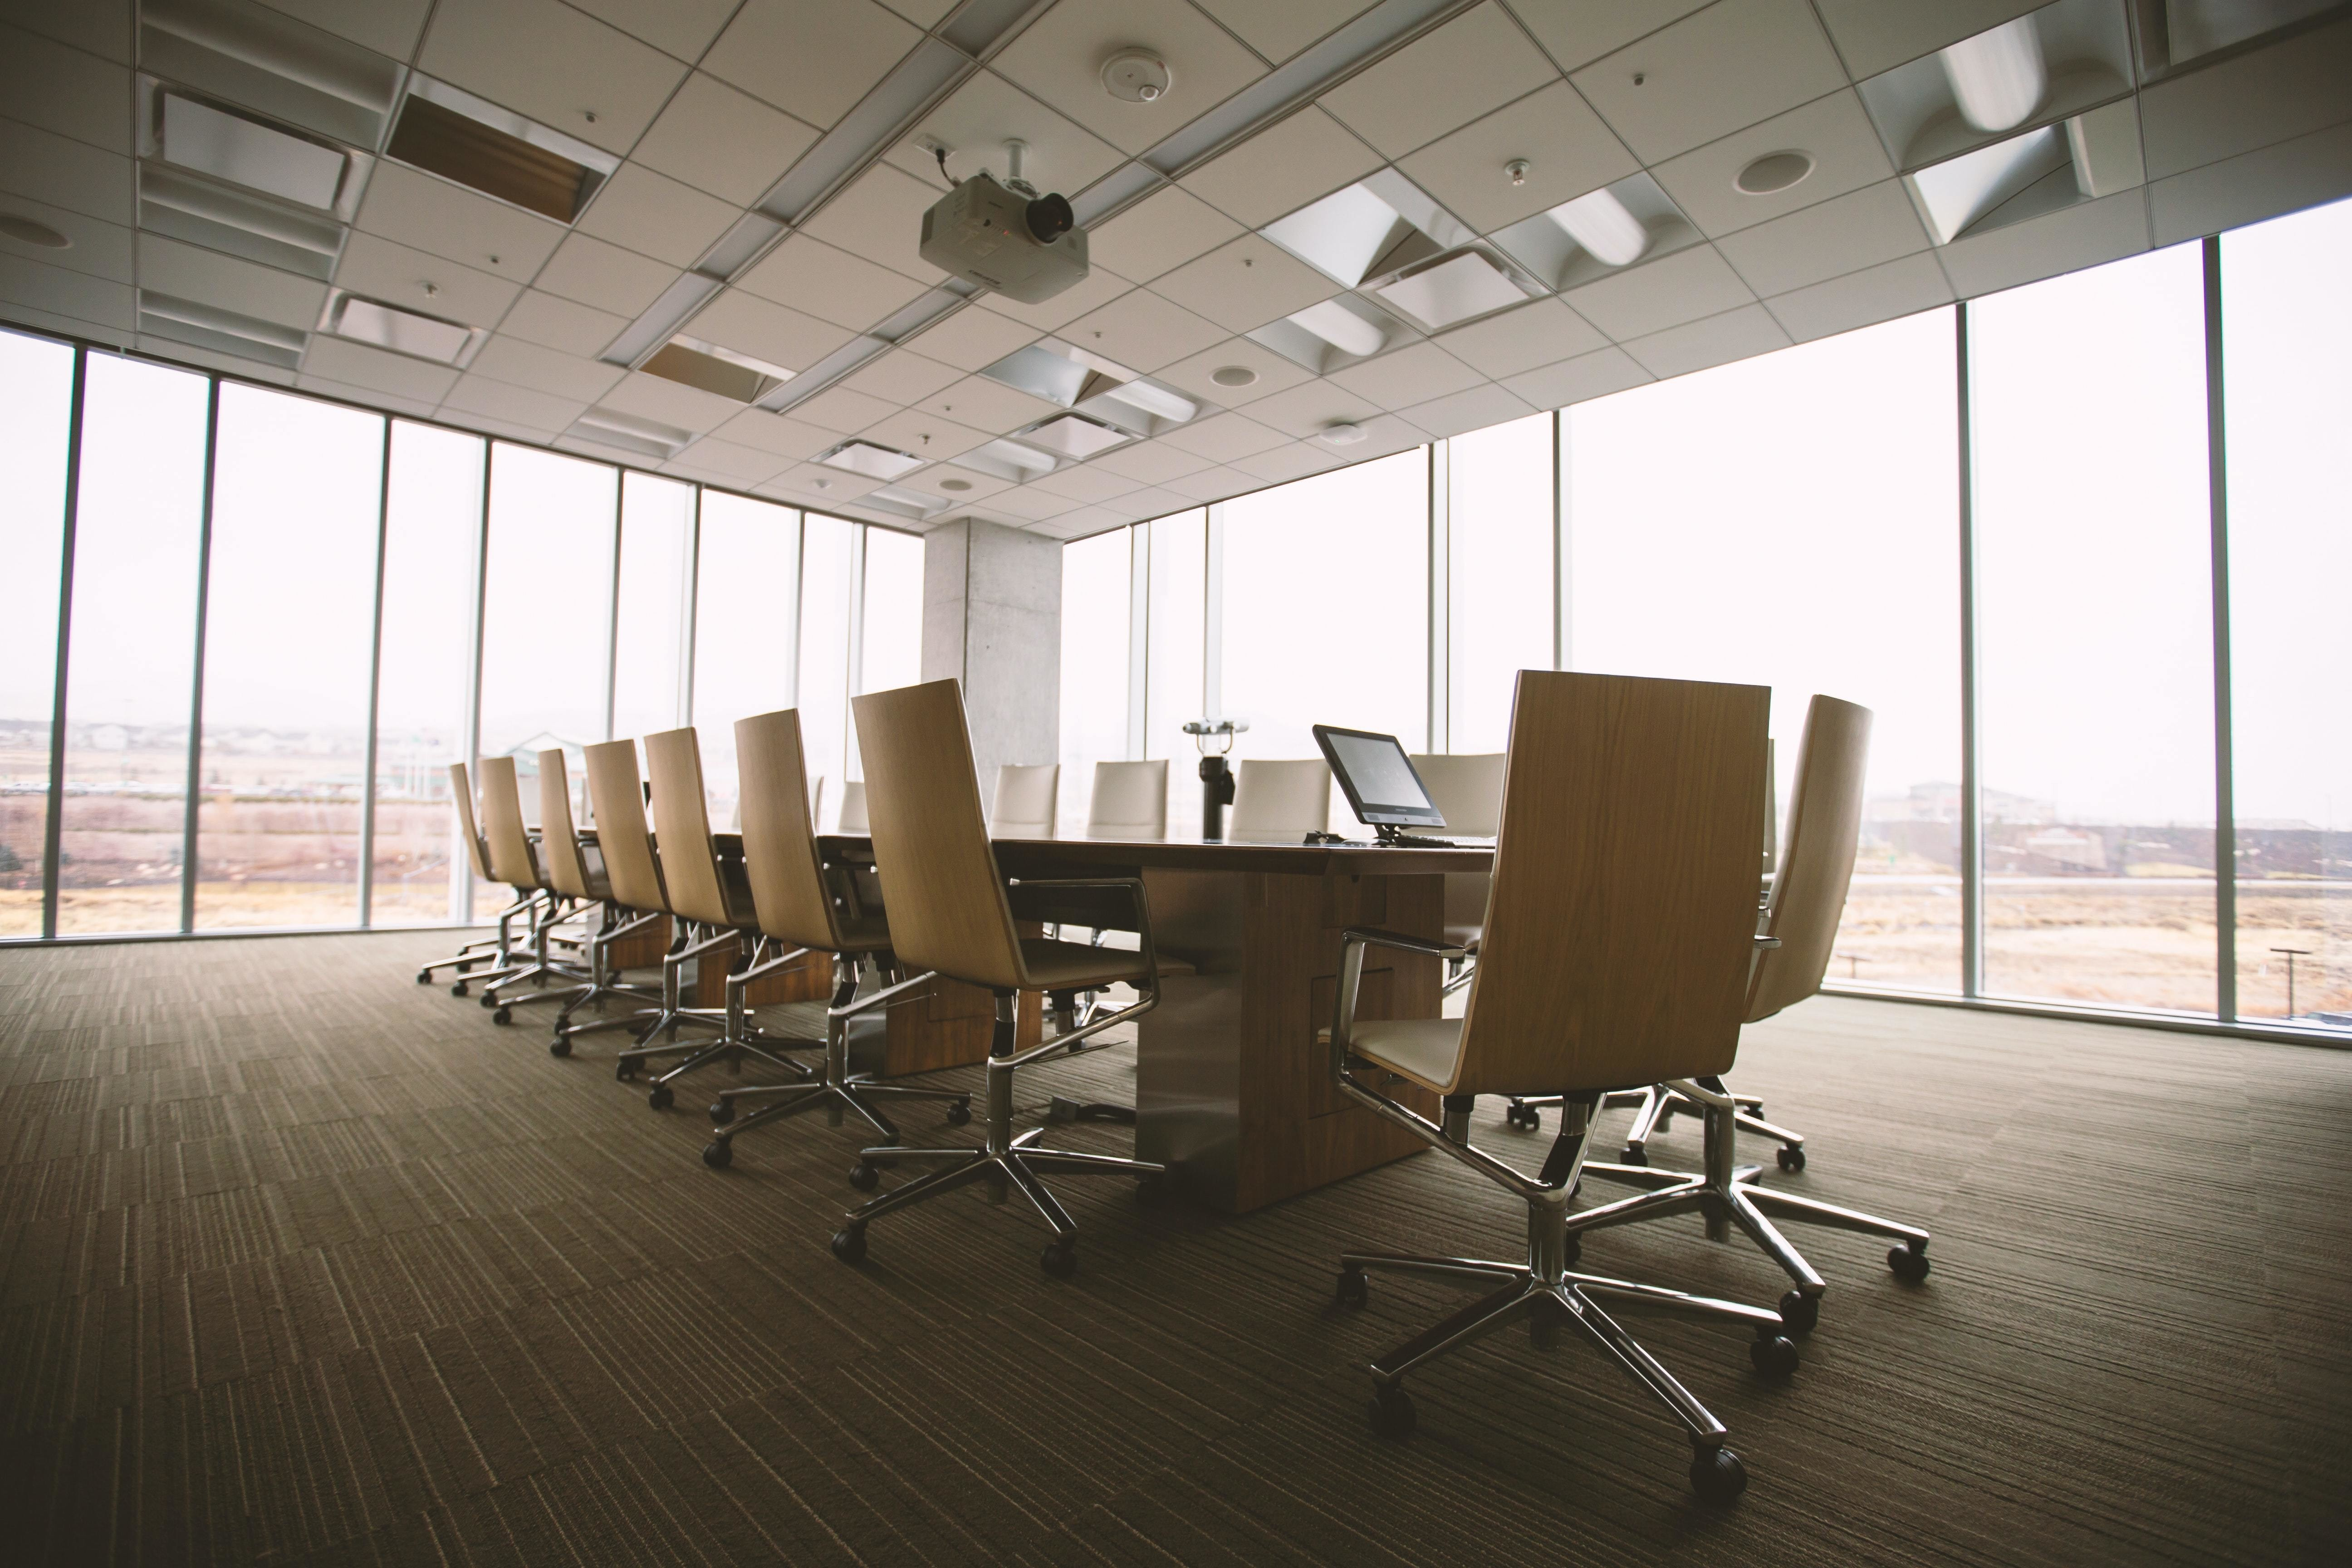 Balanced boardroom composition is a challenge in an era of diversity.